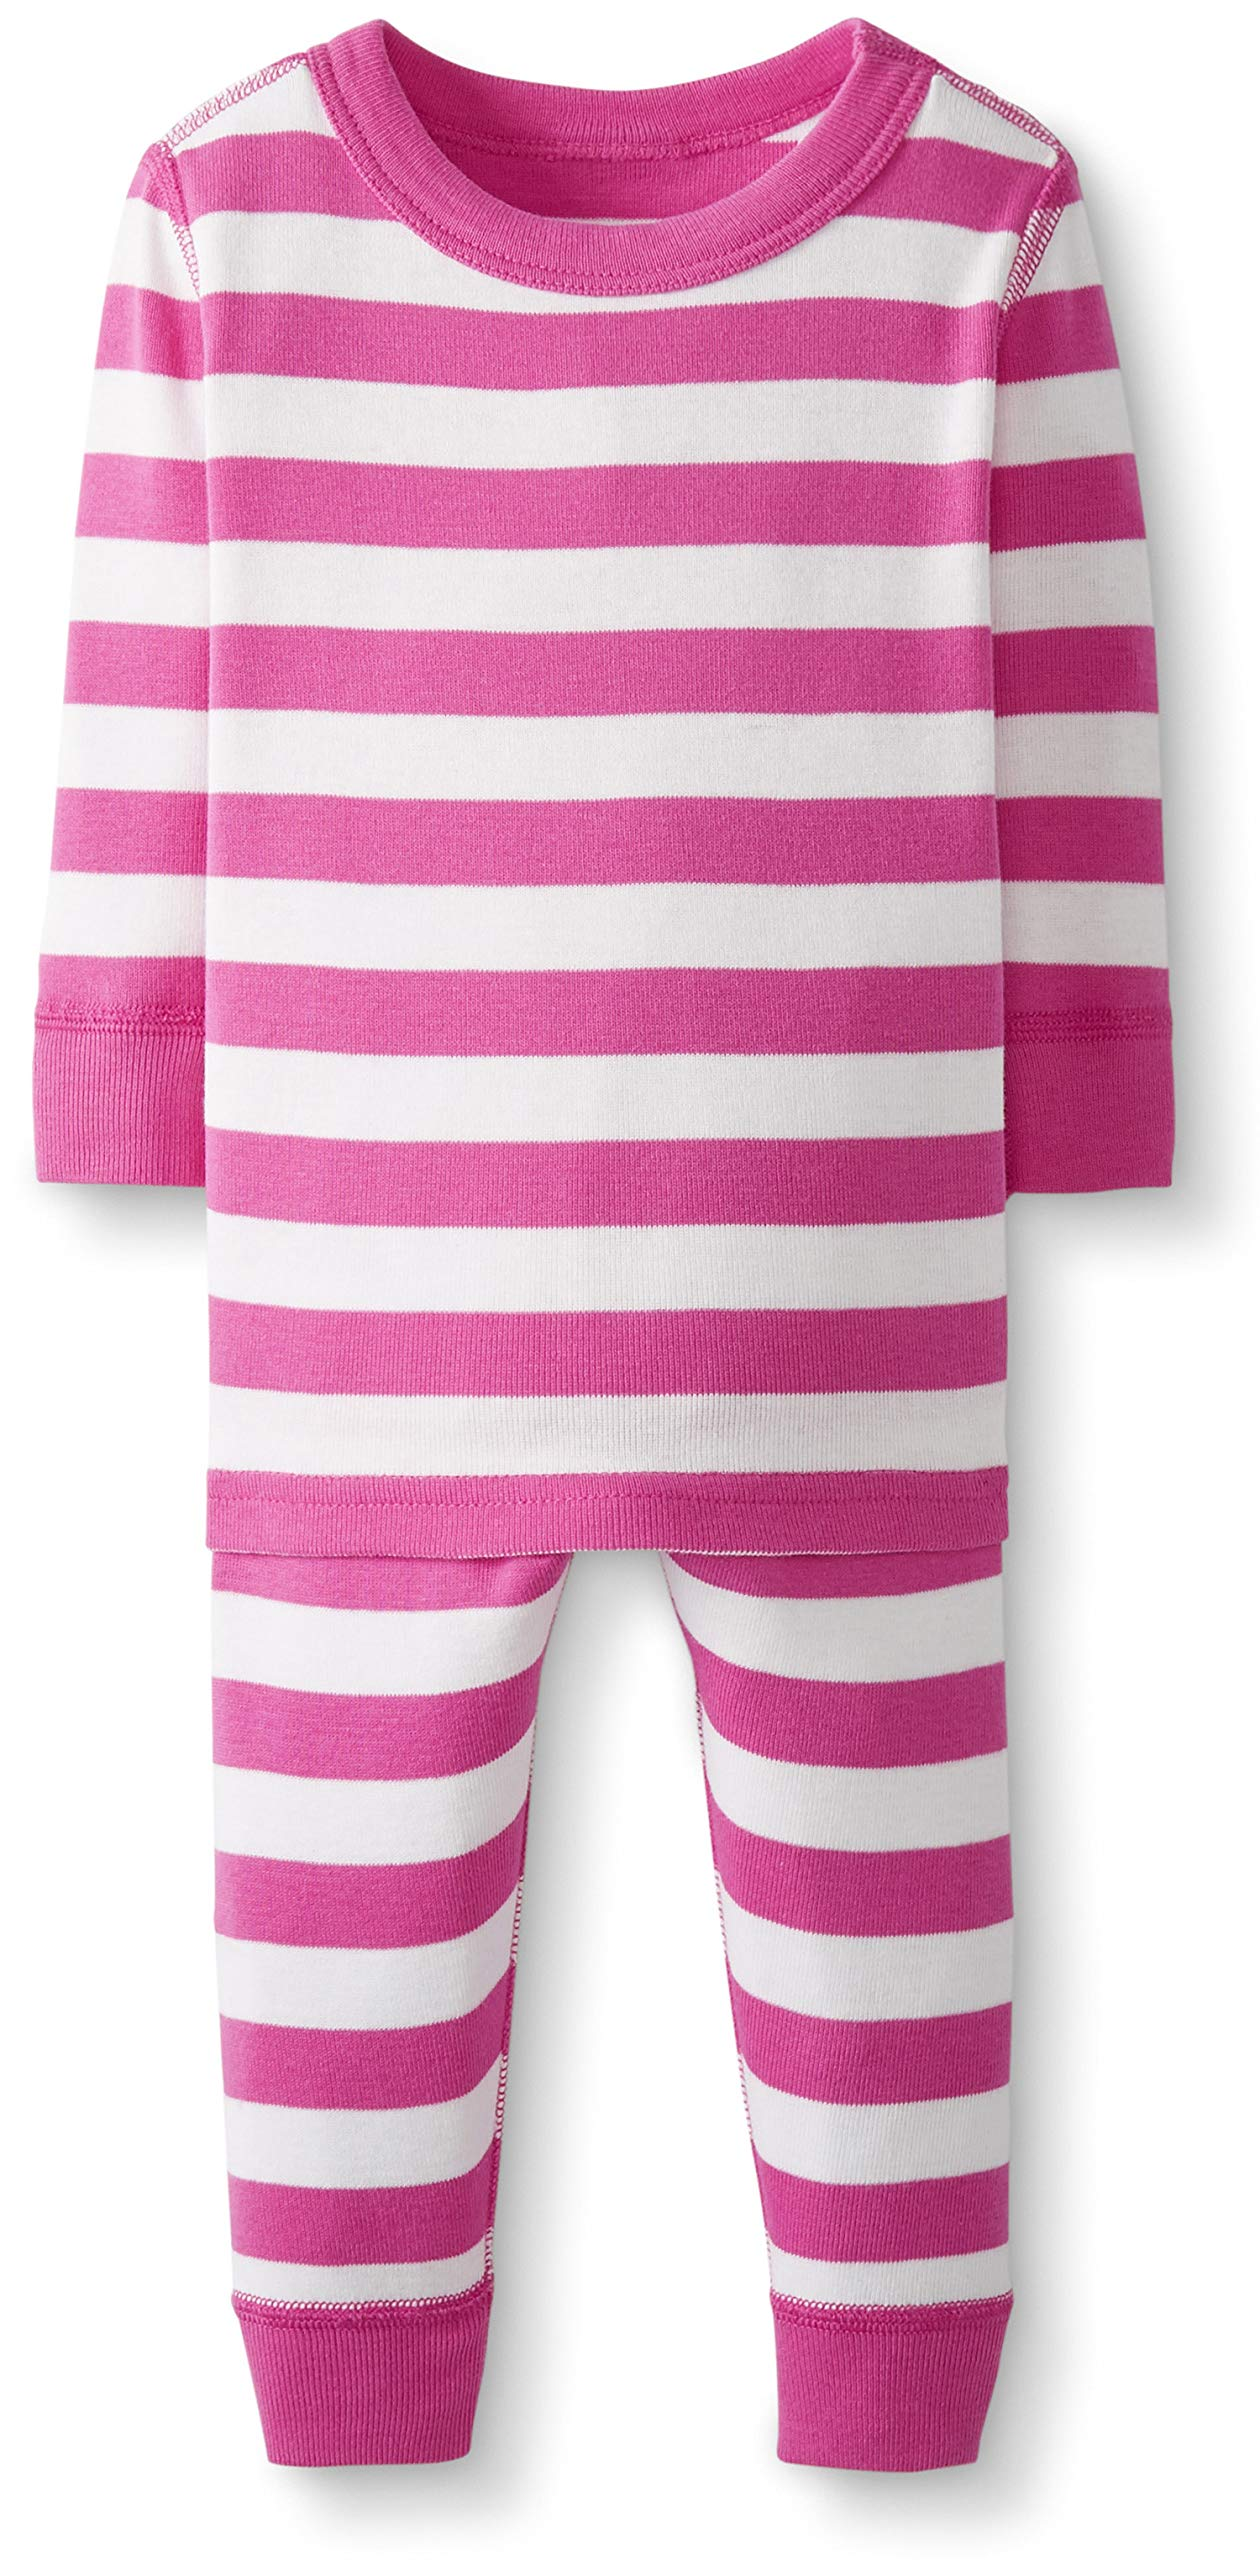 Hanna Andersson Baby/Toddler 2-Piece Organic Cotton Pajama Set Power Pink/Hanna White-50 by Hanna Andersson